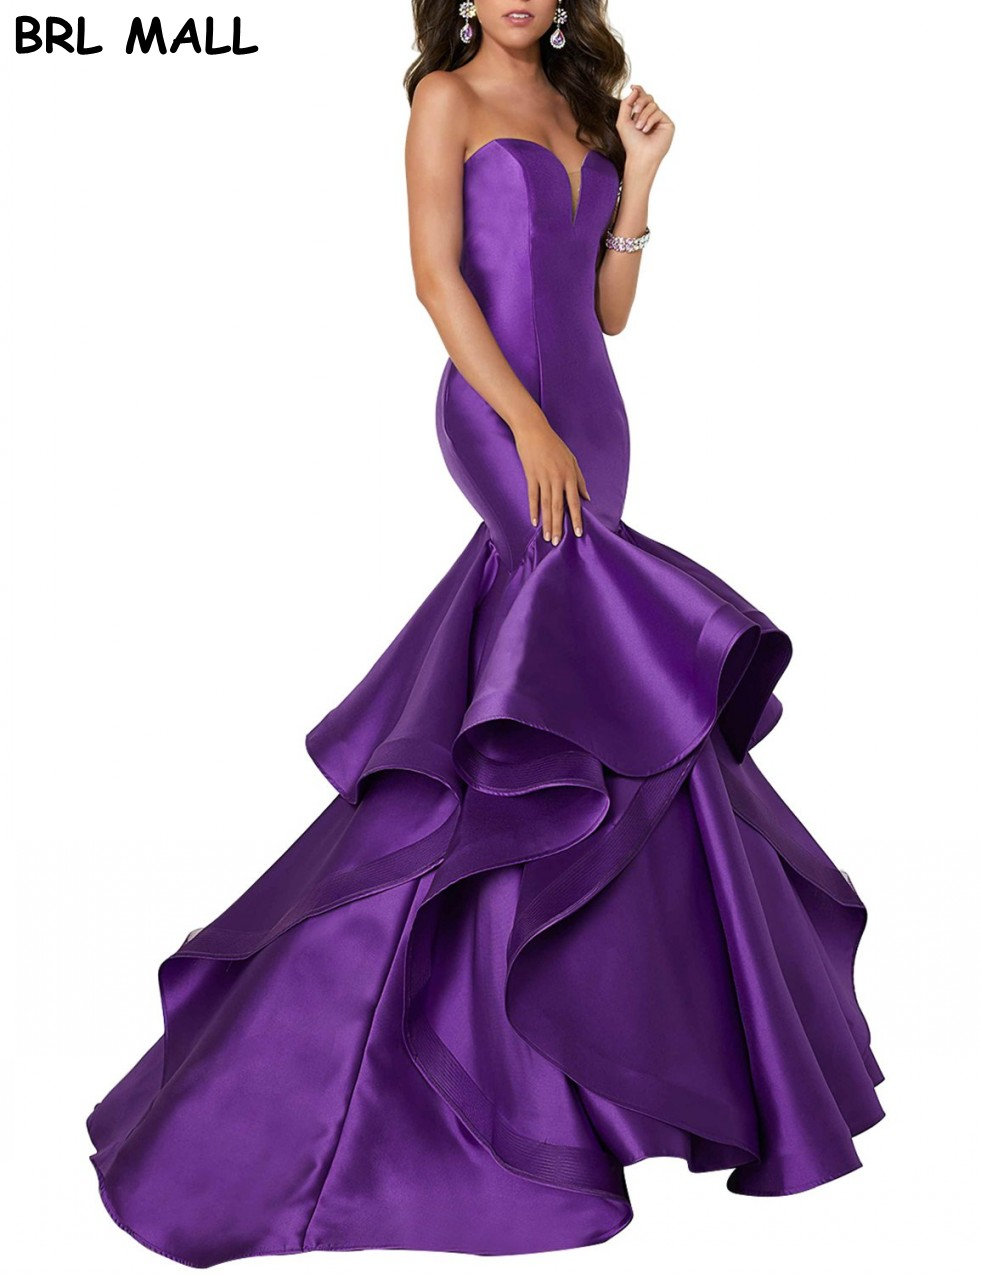 Sexy Purple Satin Mermaid Prom Dresses For Teens Girl Sweetheart Elegant Formal Evening Dresses Cheap Party Bridesmaid Gowns